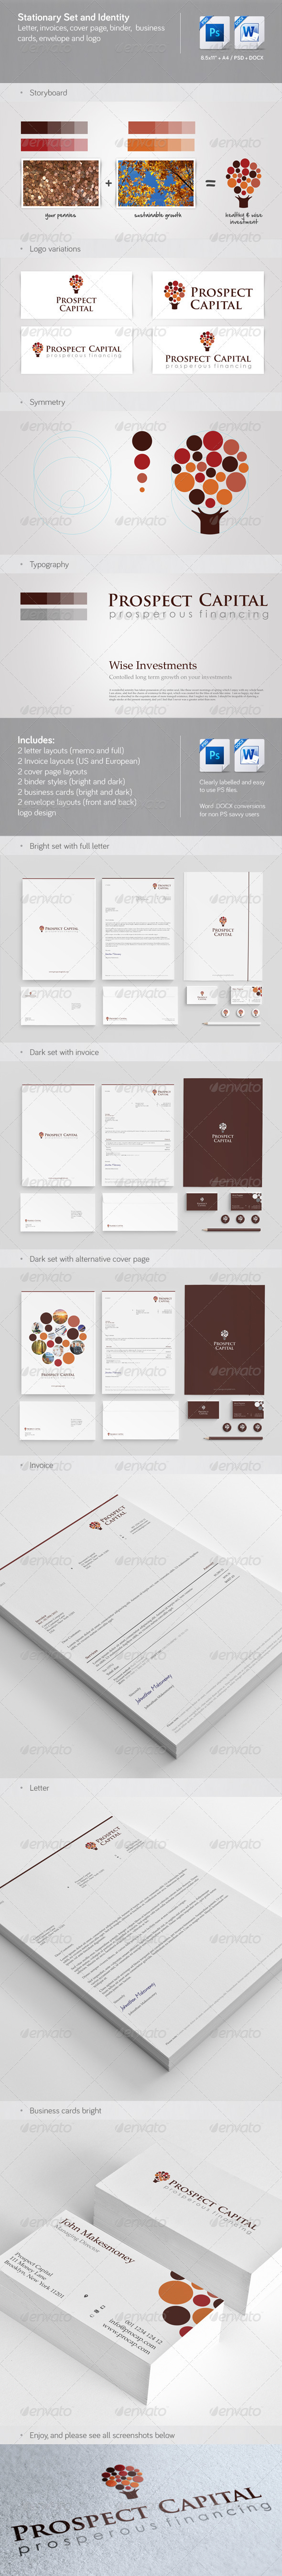 GraphicRiver Corporate Stationary Invoice and Identity 3426891